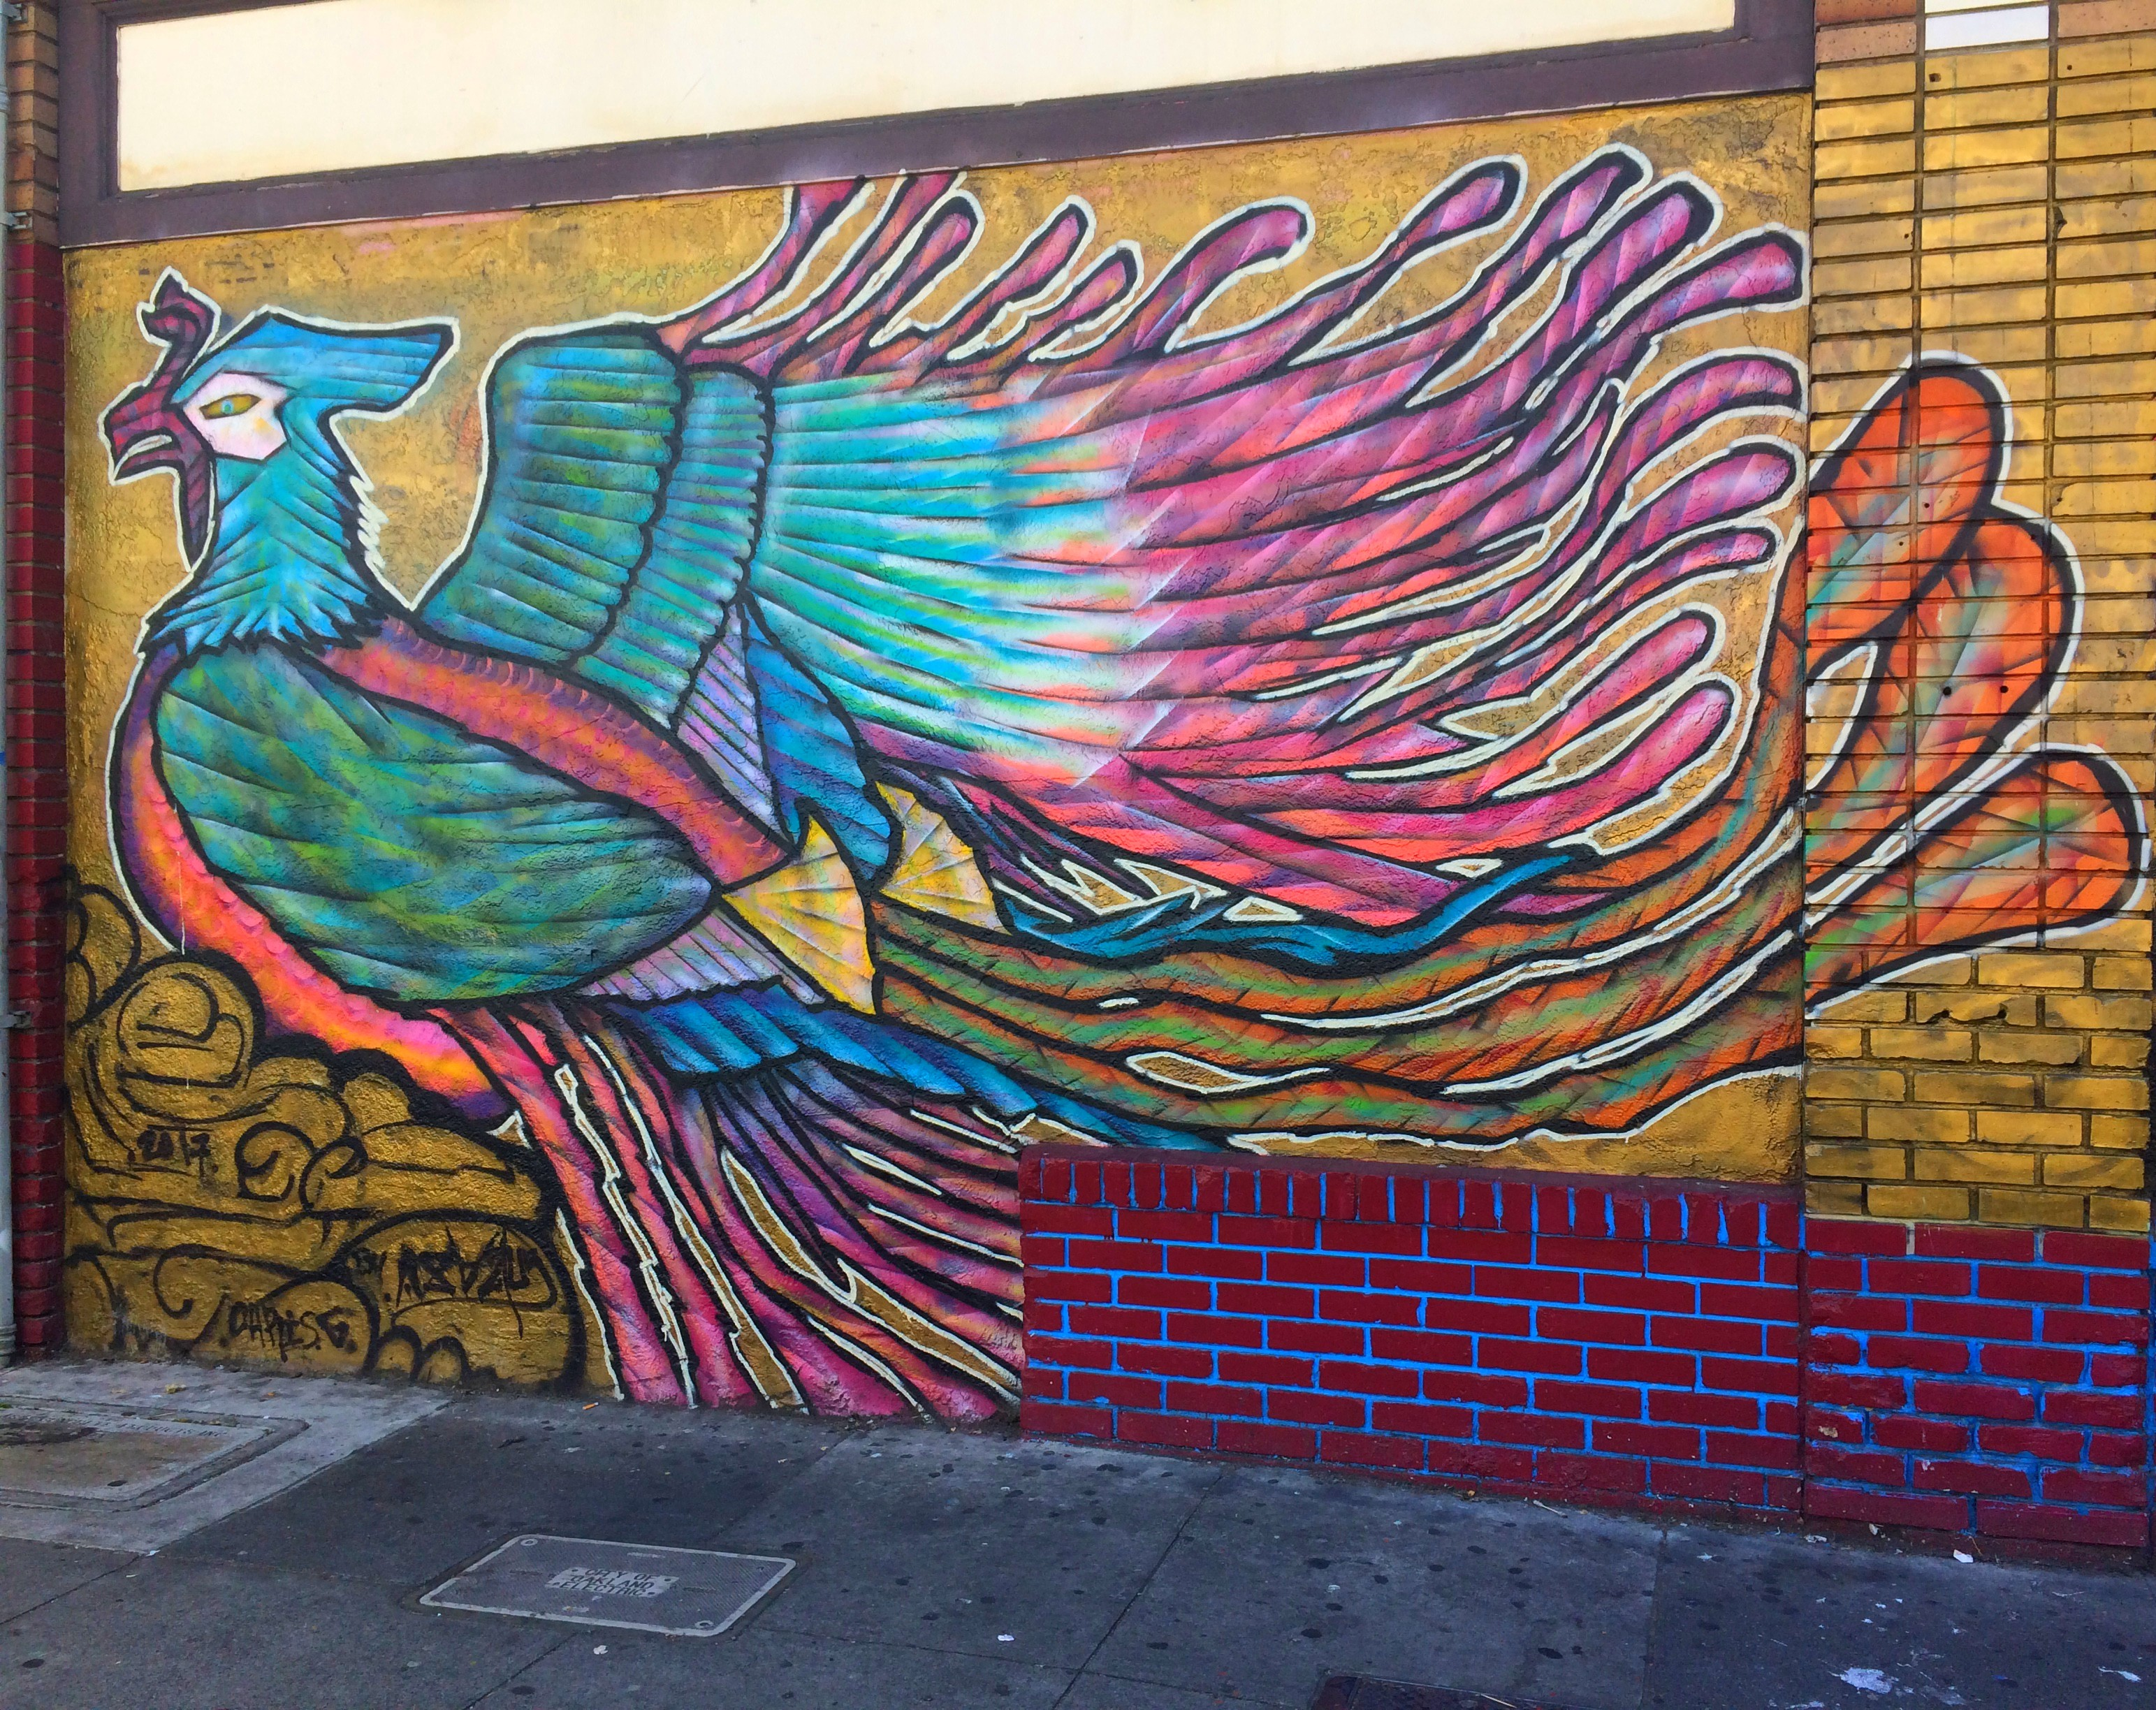 A red-brick wall painted over with a large mural of a parrot with long, sweeping wings and tail feathers on a yellow background.